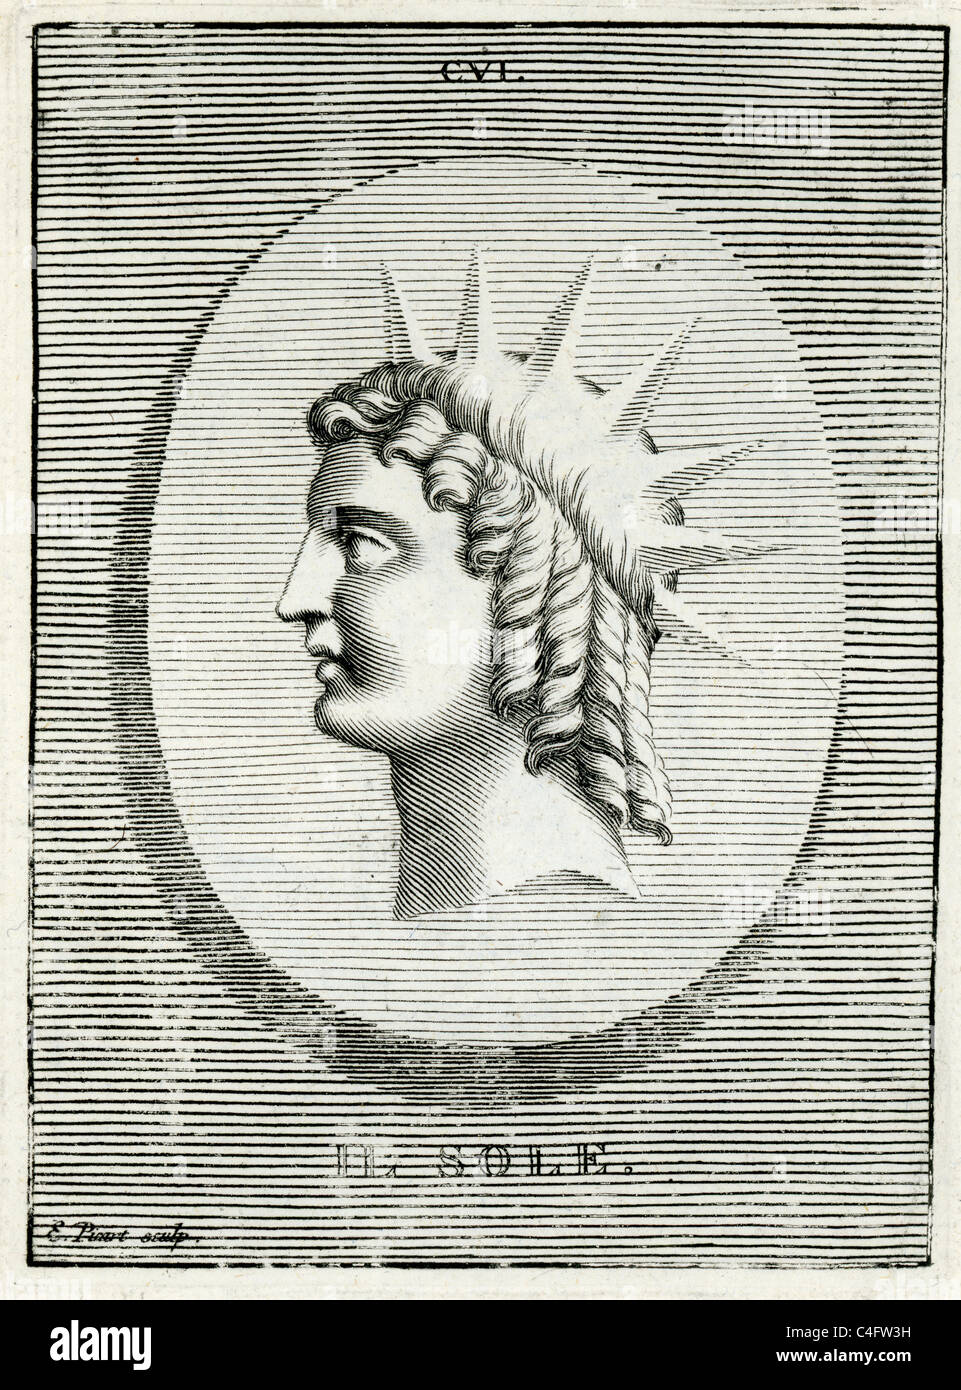 Classical Portrait Of Helios The Personification Sun In Greek Mythology Homer Often Calls